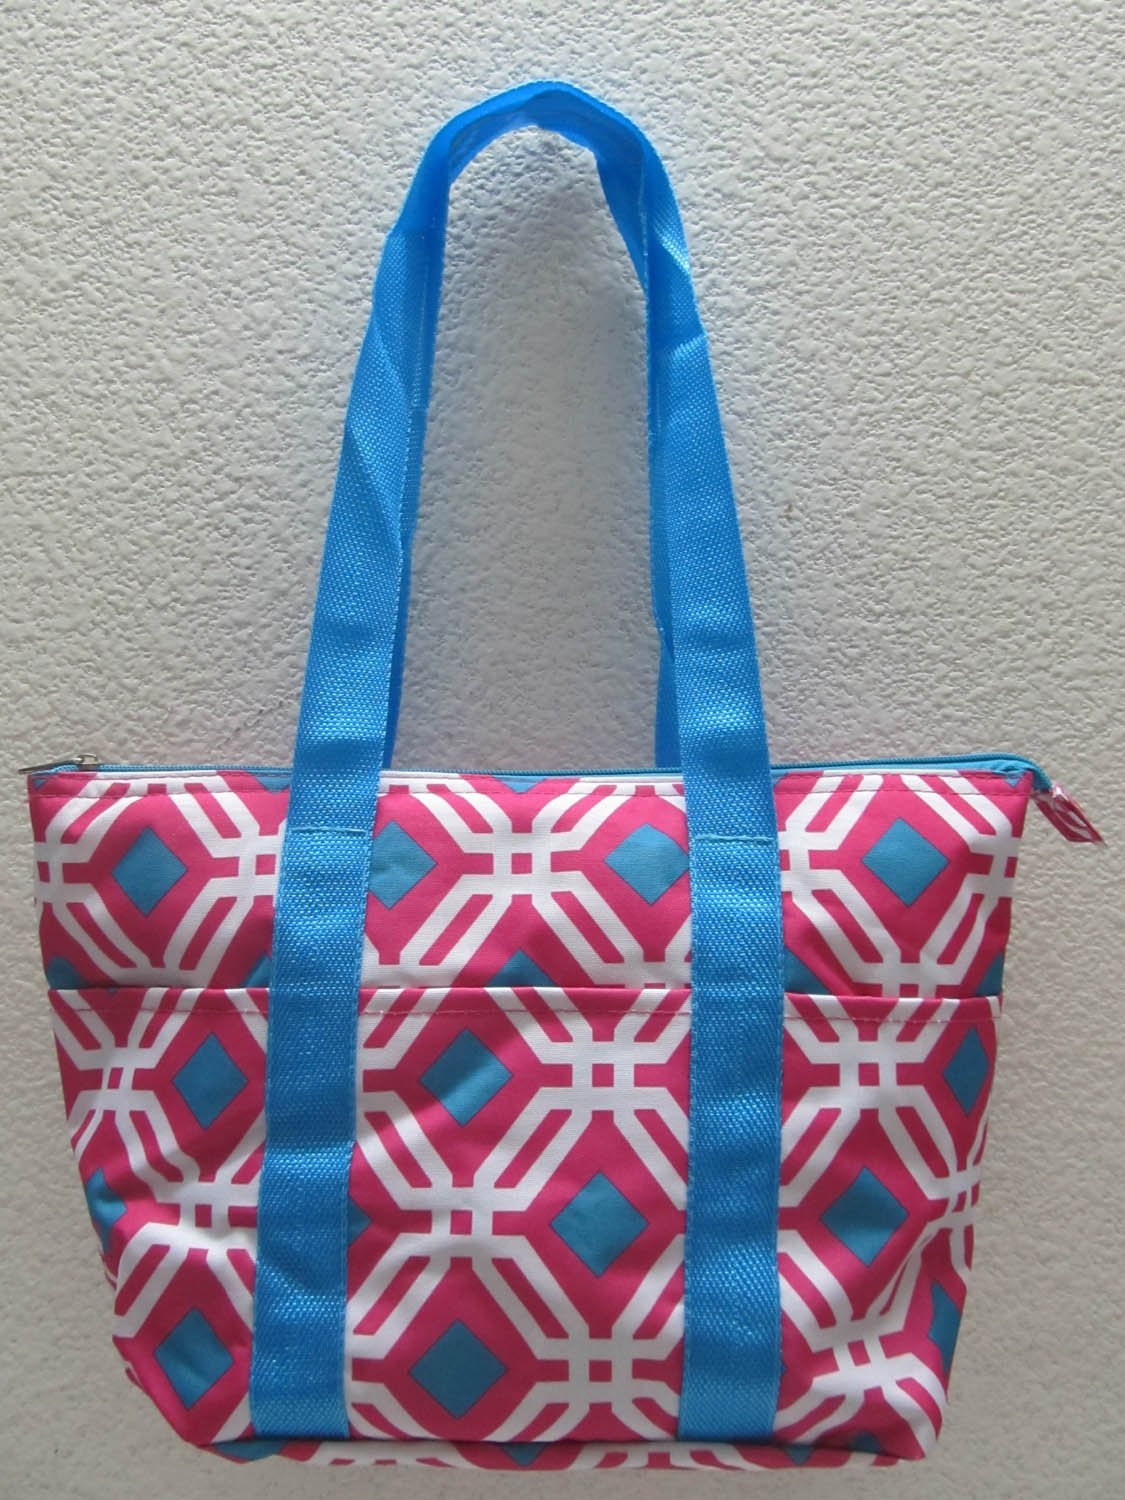 Good Bag Insulated Lunch Bag Portable Carry Storage Lunch Tote Bag - Pink Graphic